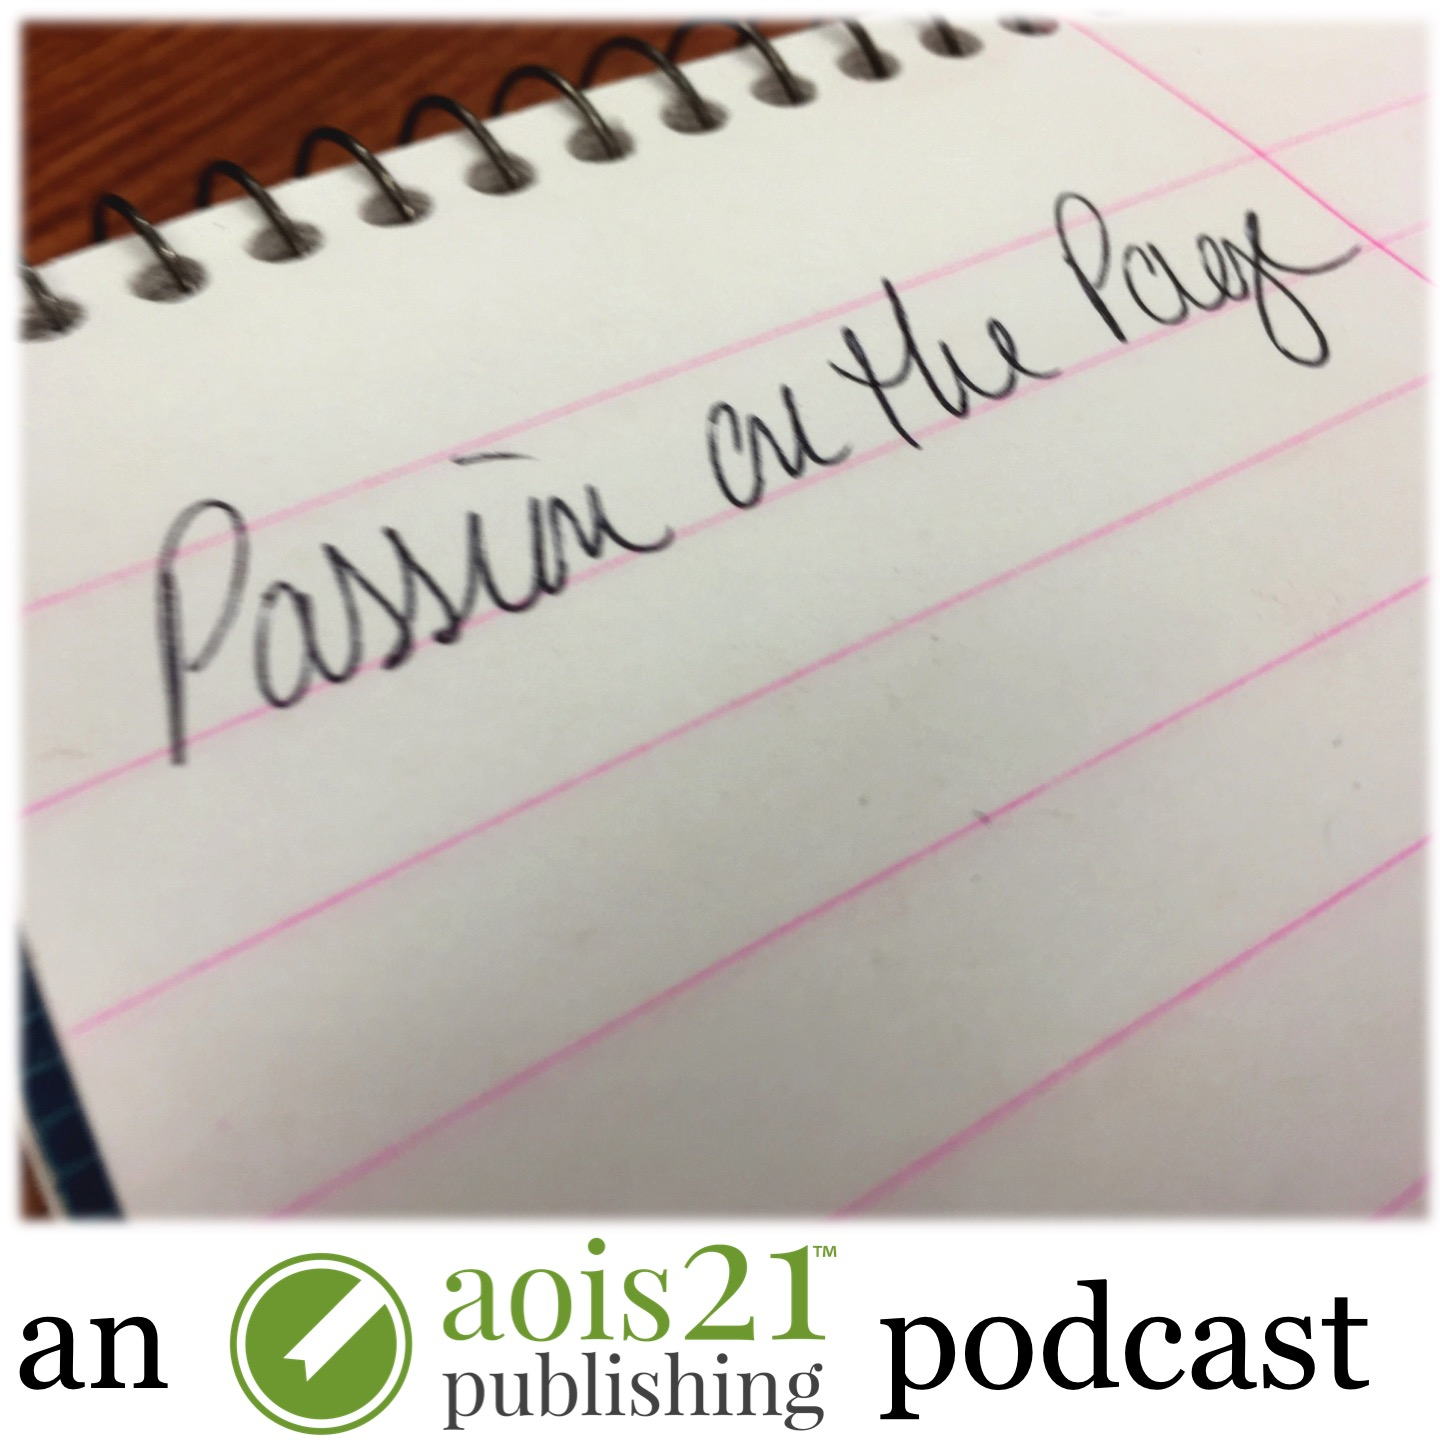 The Passion on the Page Podcast